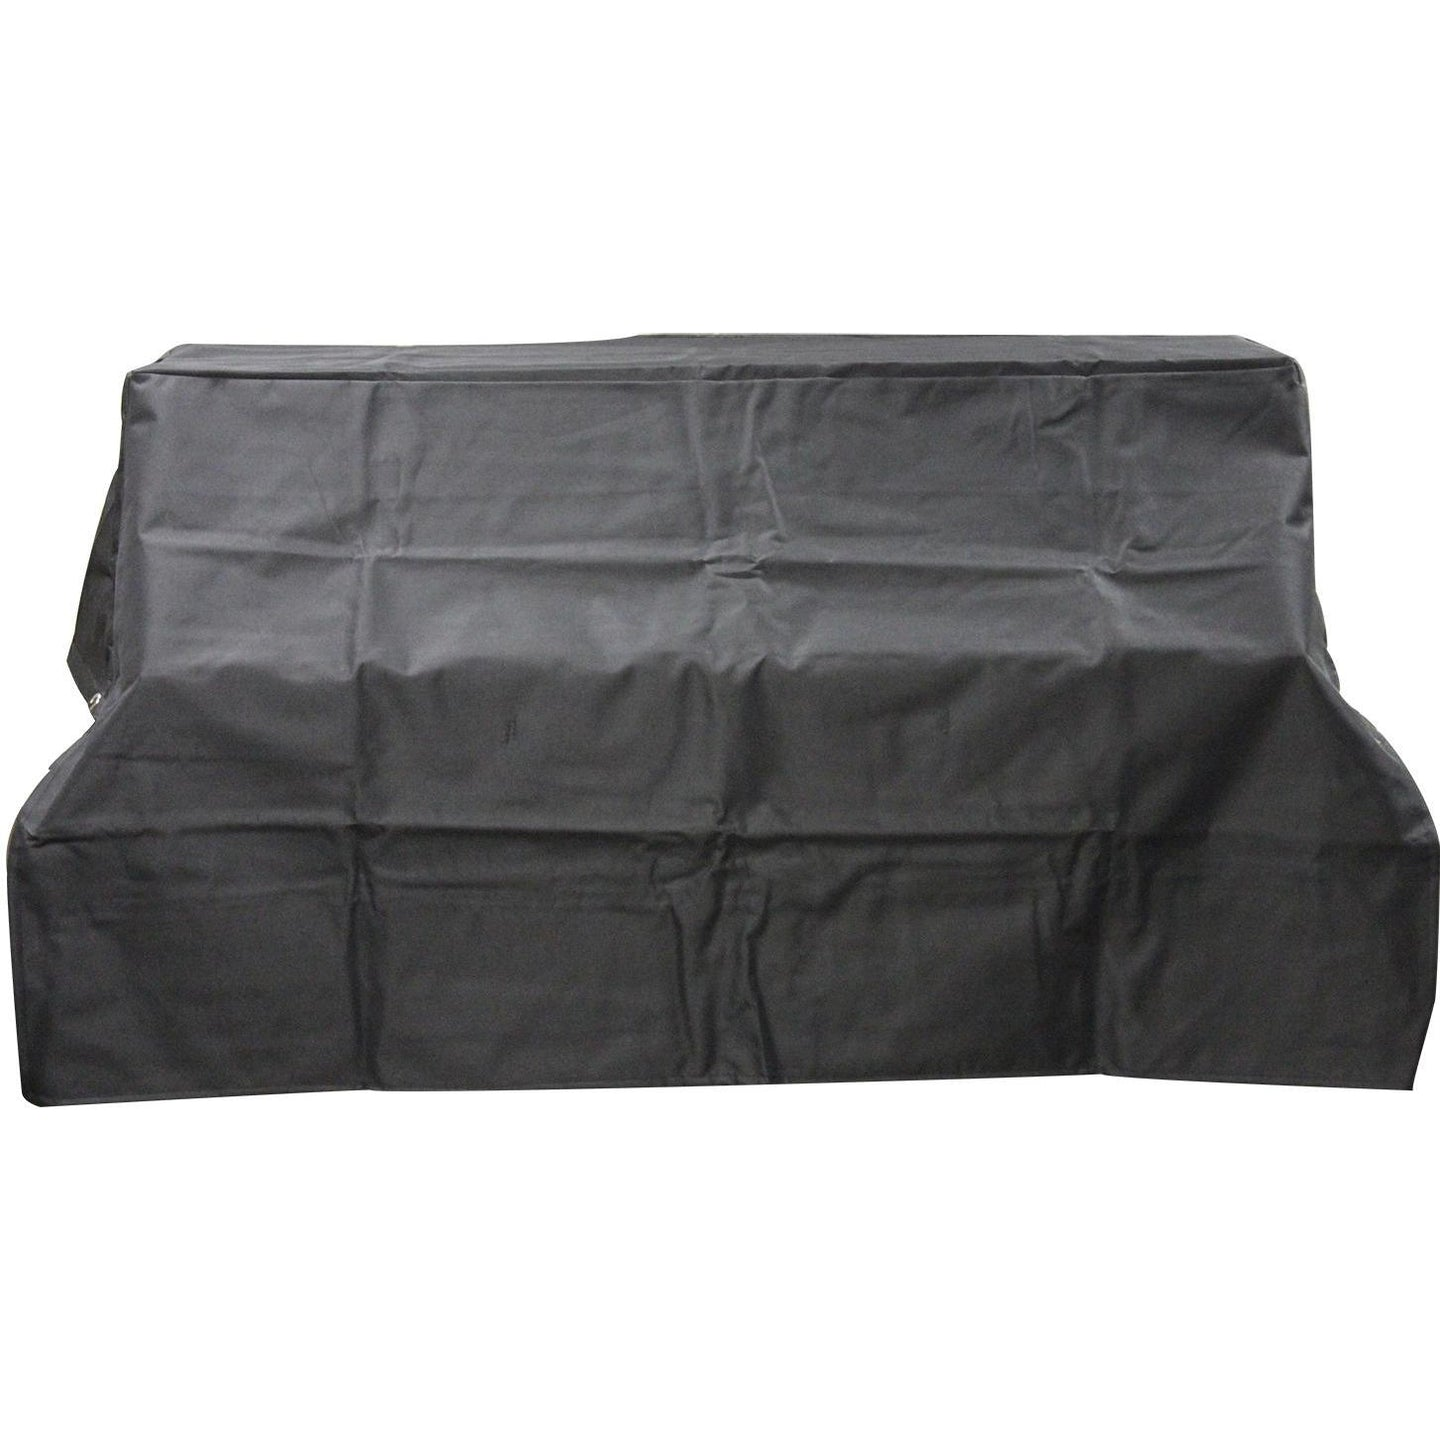 Summerset Deluxe Grill Cover For 42-Inch Alturi Built-In Gas Grills